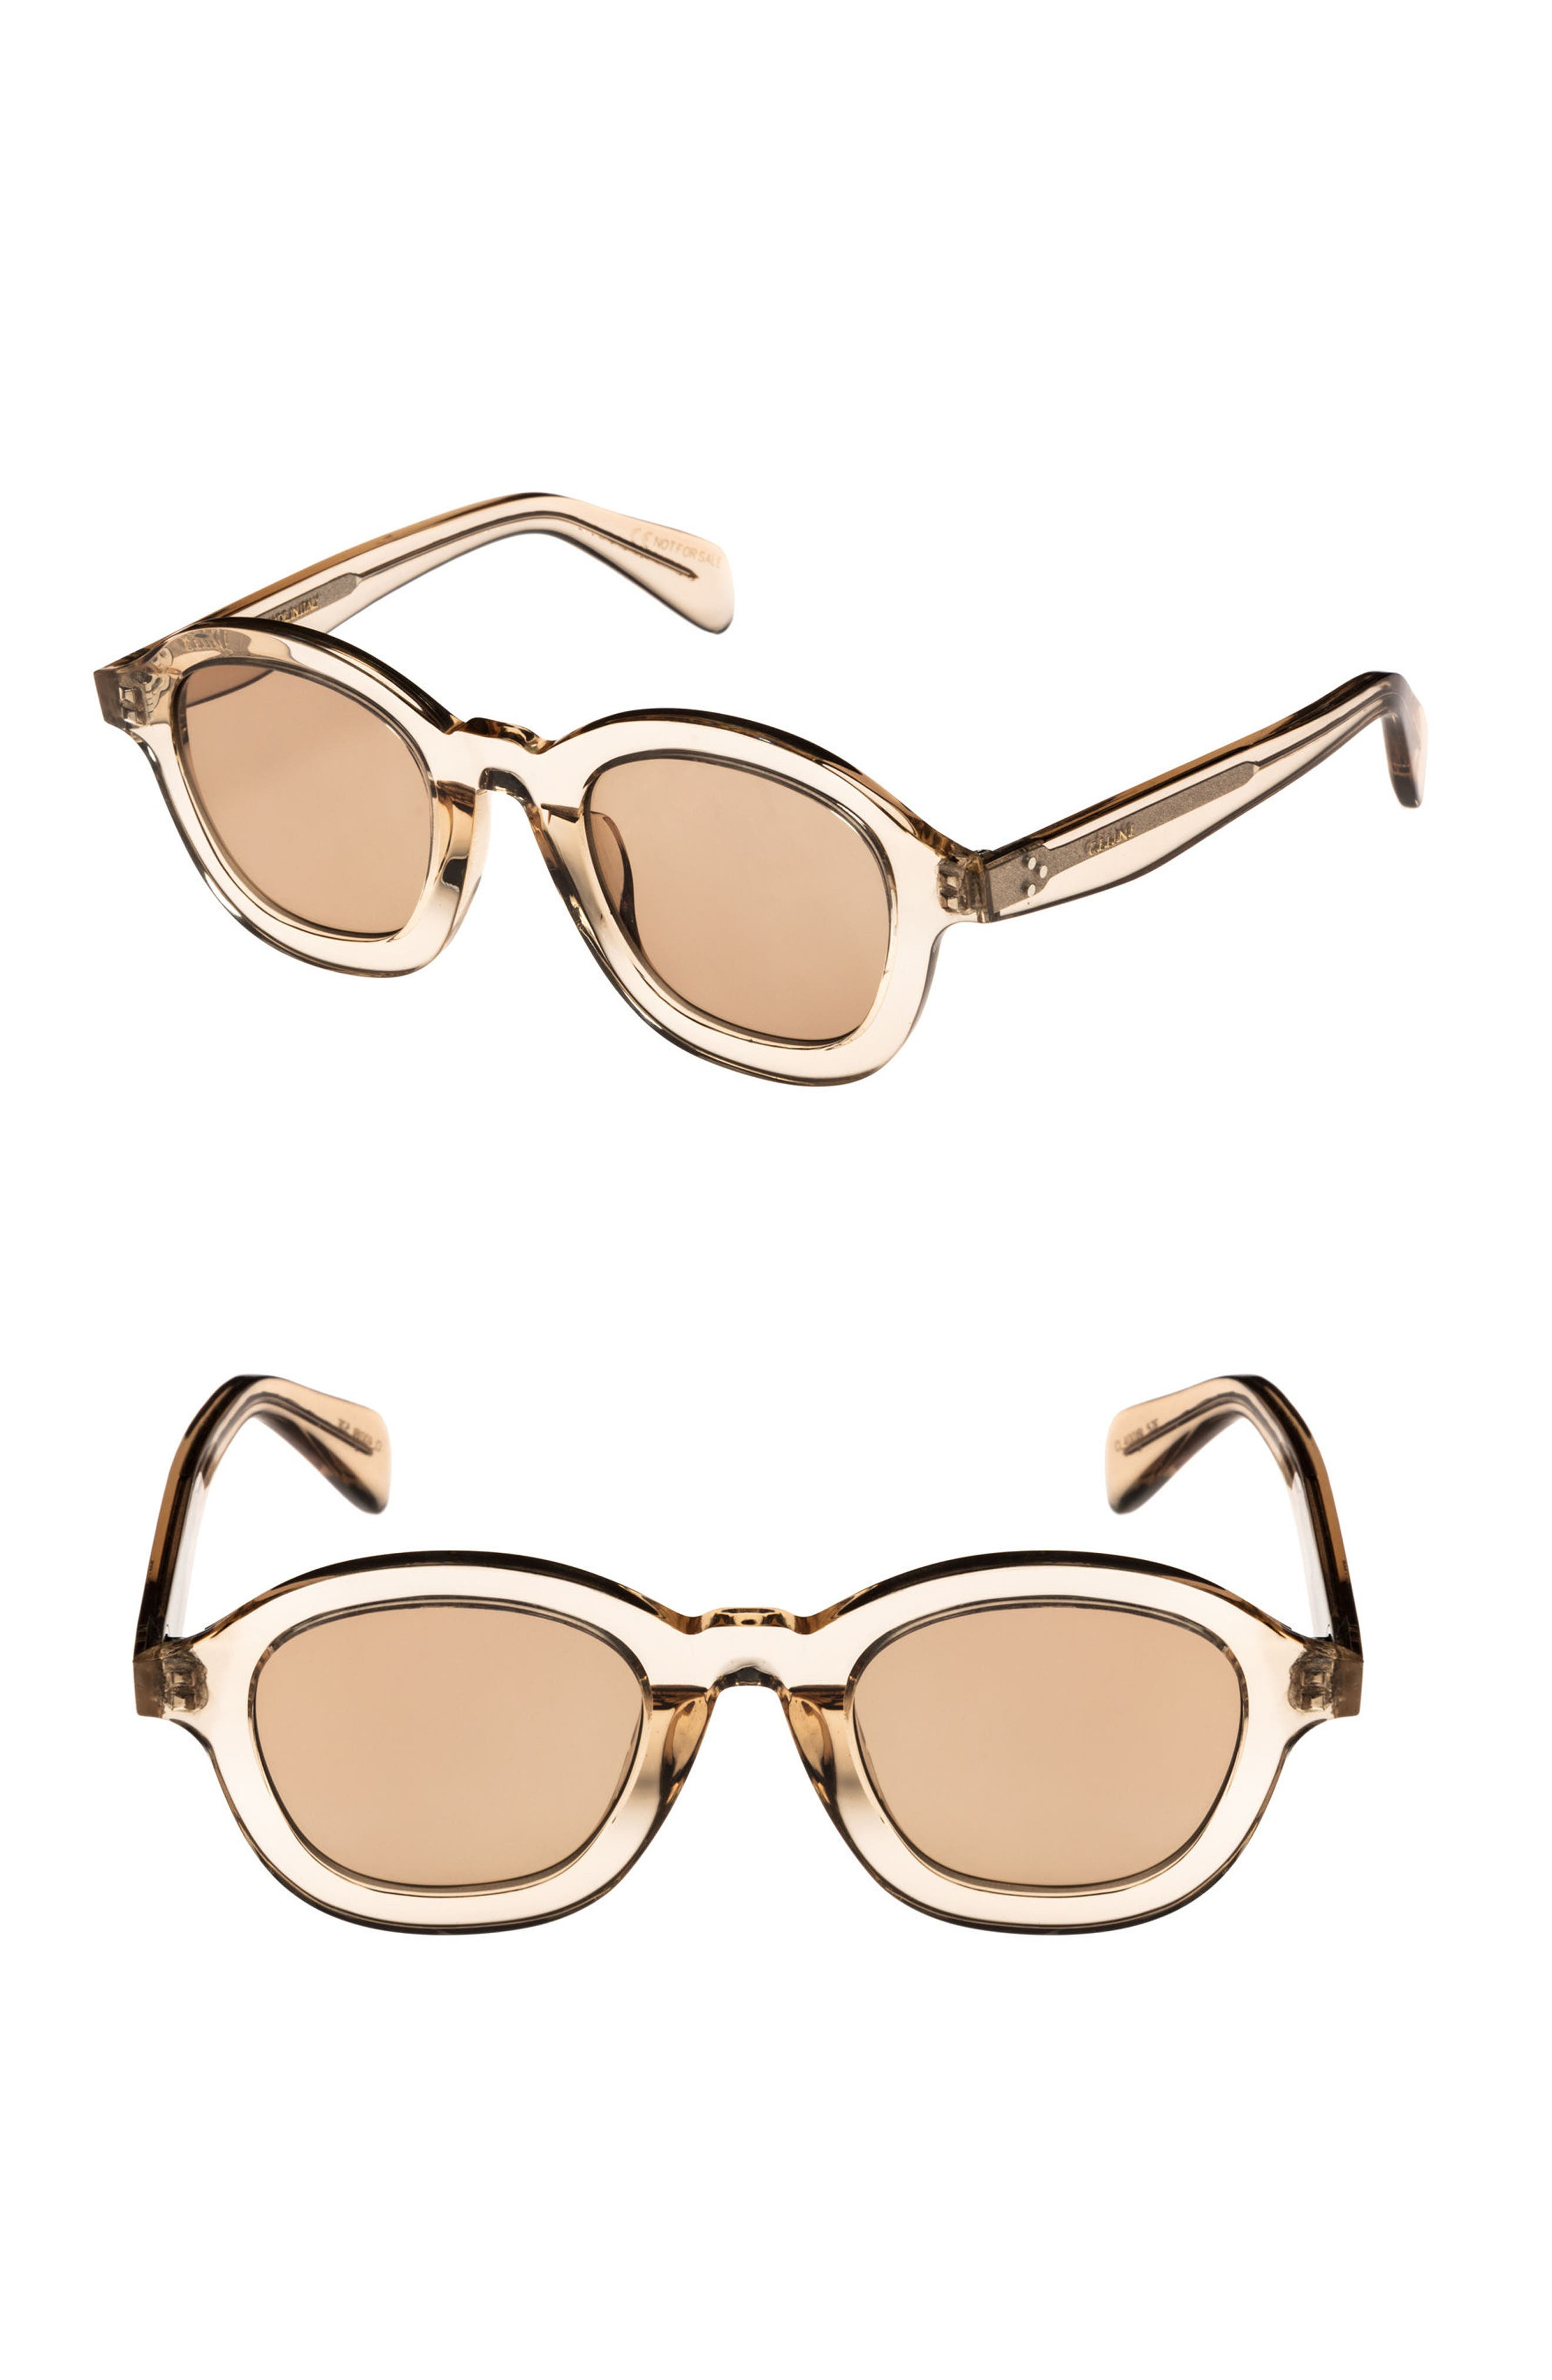 47mm Round Sunglasses,                         Main,                         color, BEIGE/ LIGHT BROWN